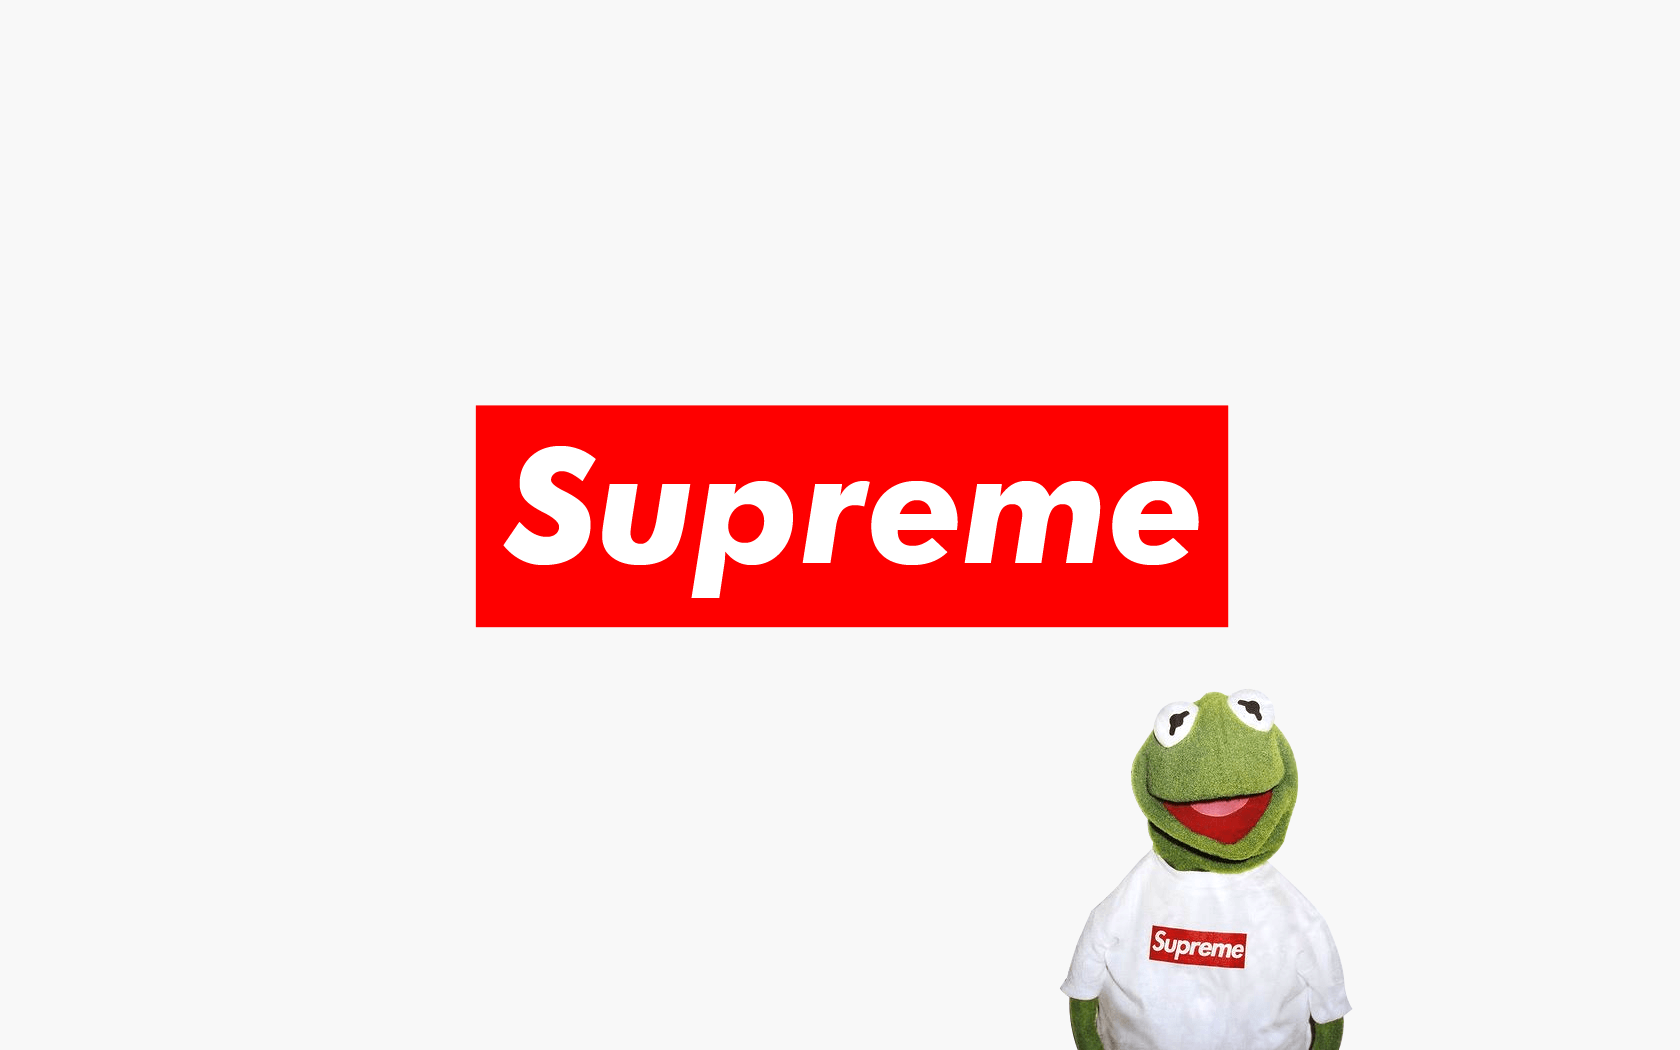 Supreme Kermit Wallpapers - Top Free Supreme Kermit Backgrounds